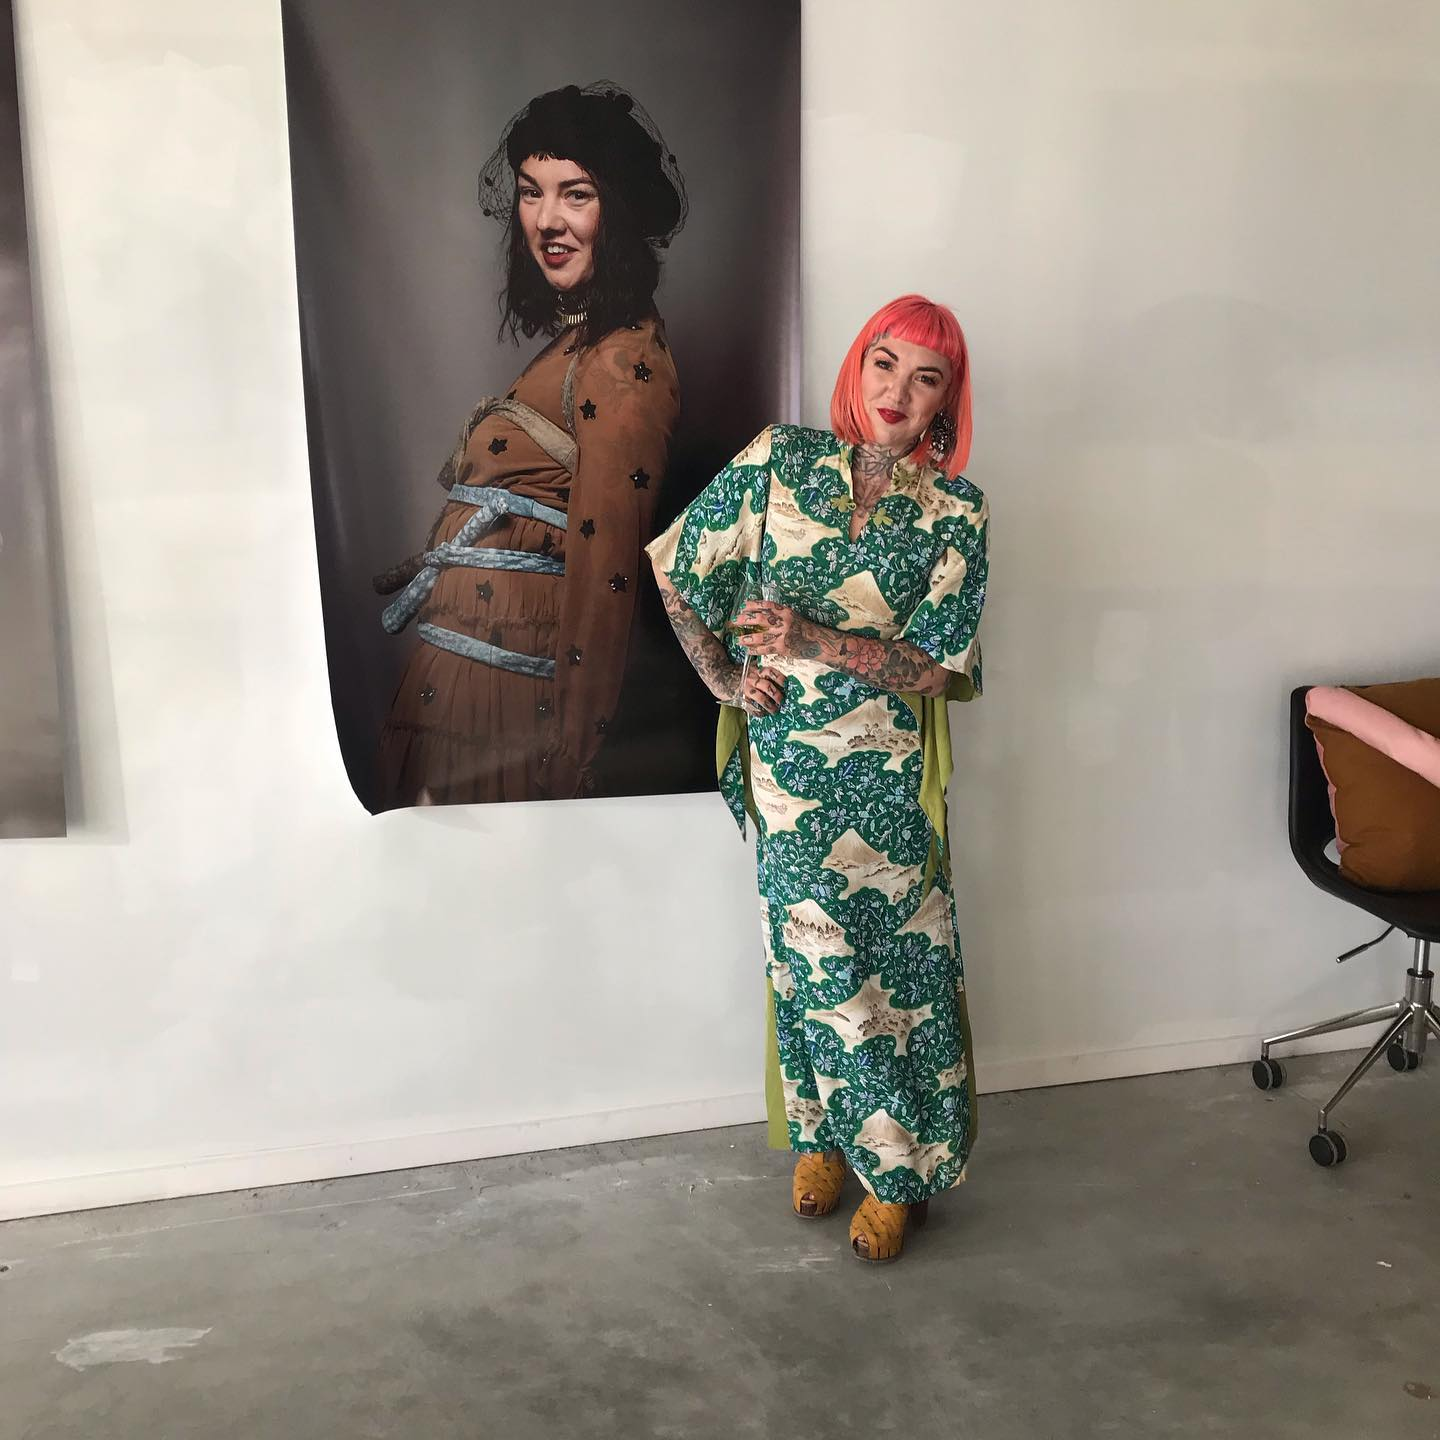 Claire Todd in front of her Image